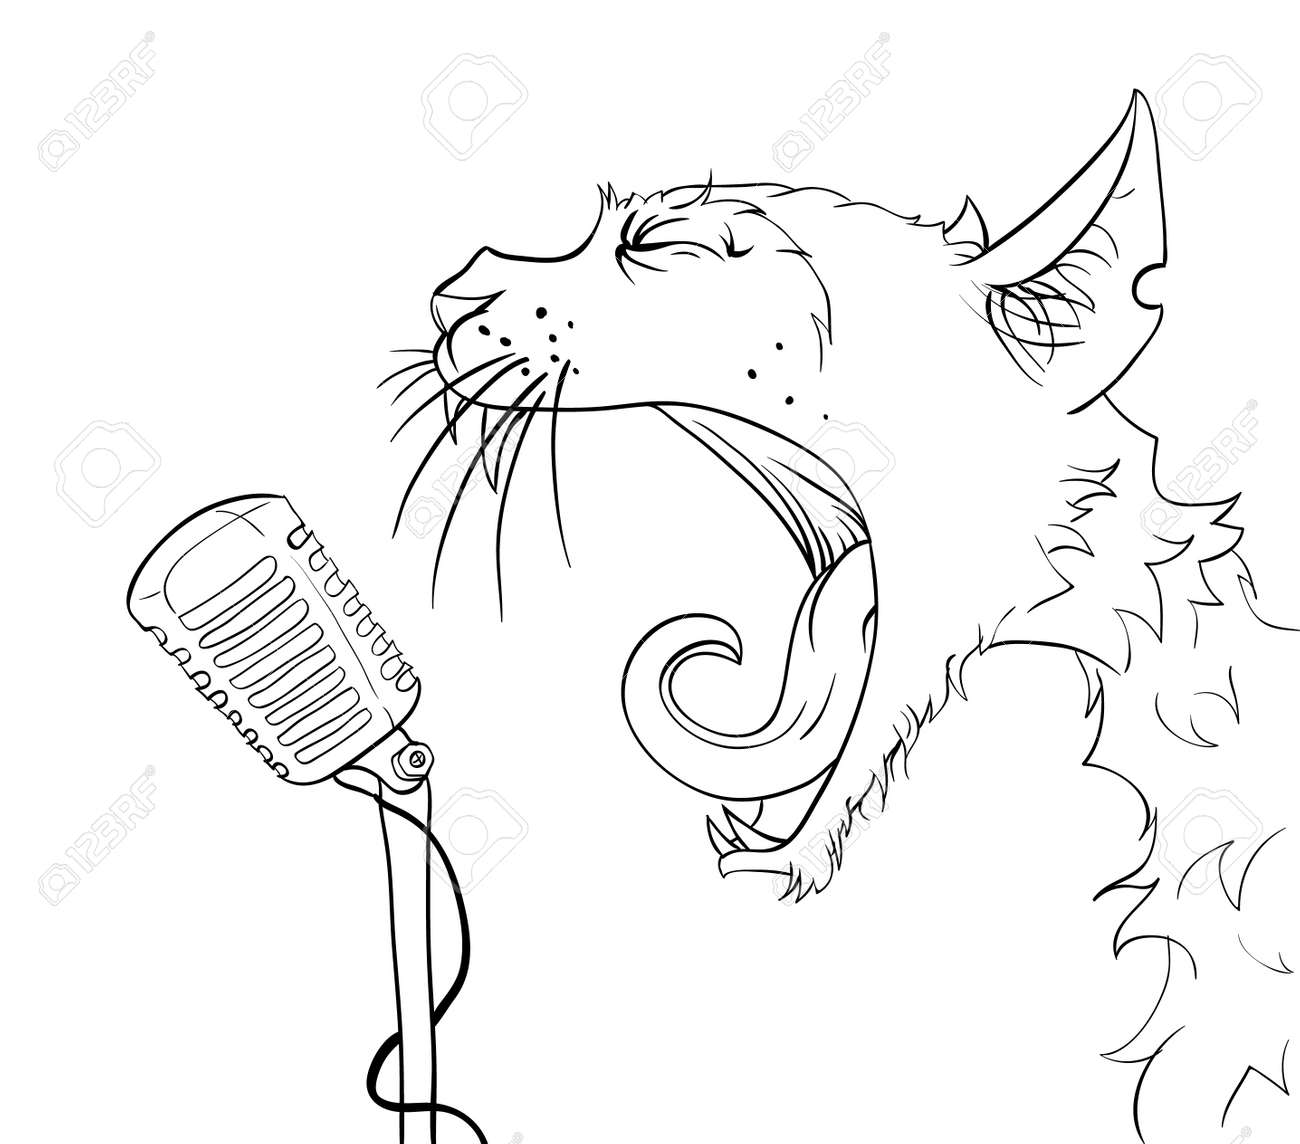 Cat yells into the microphone. Vector illustration. Stock Vector - 12201803